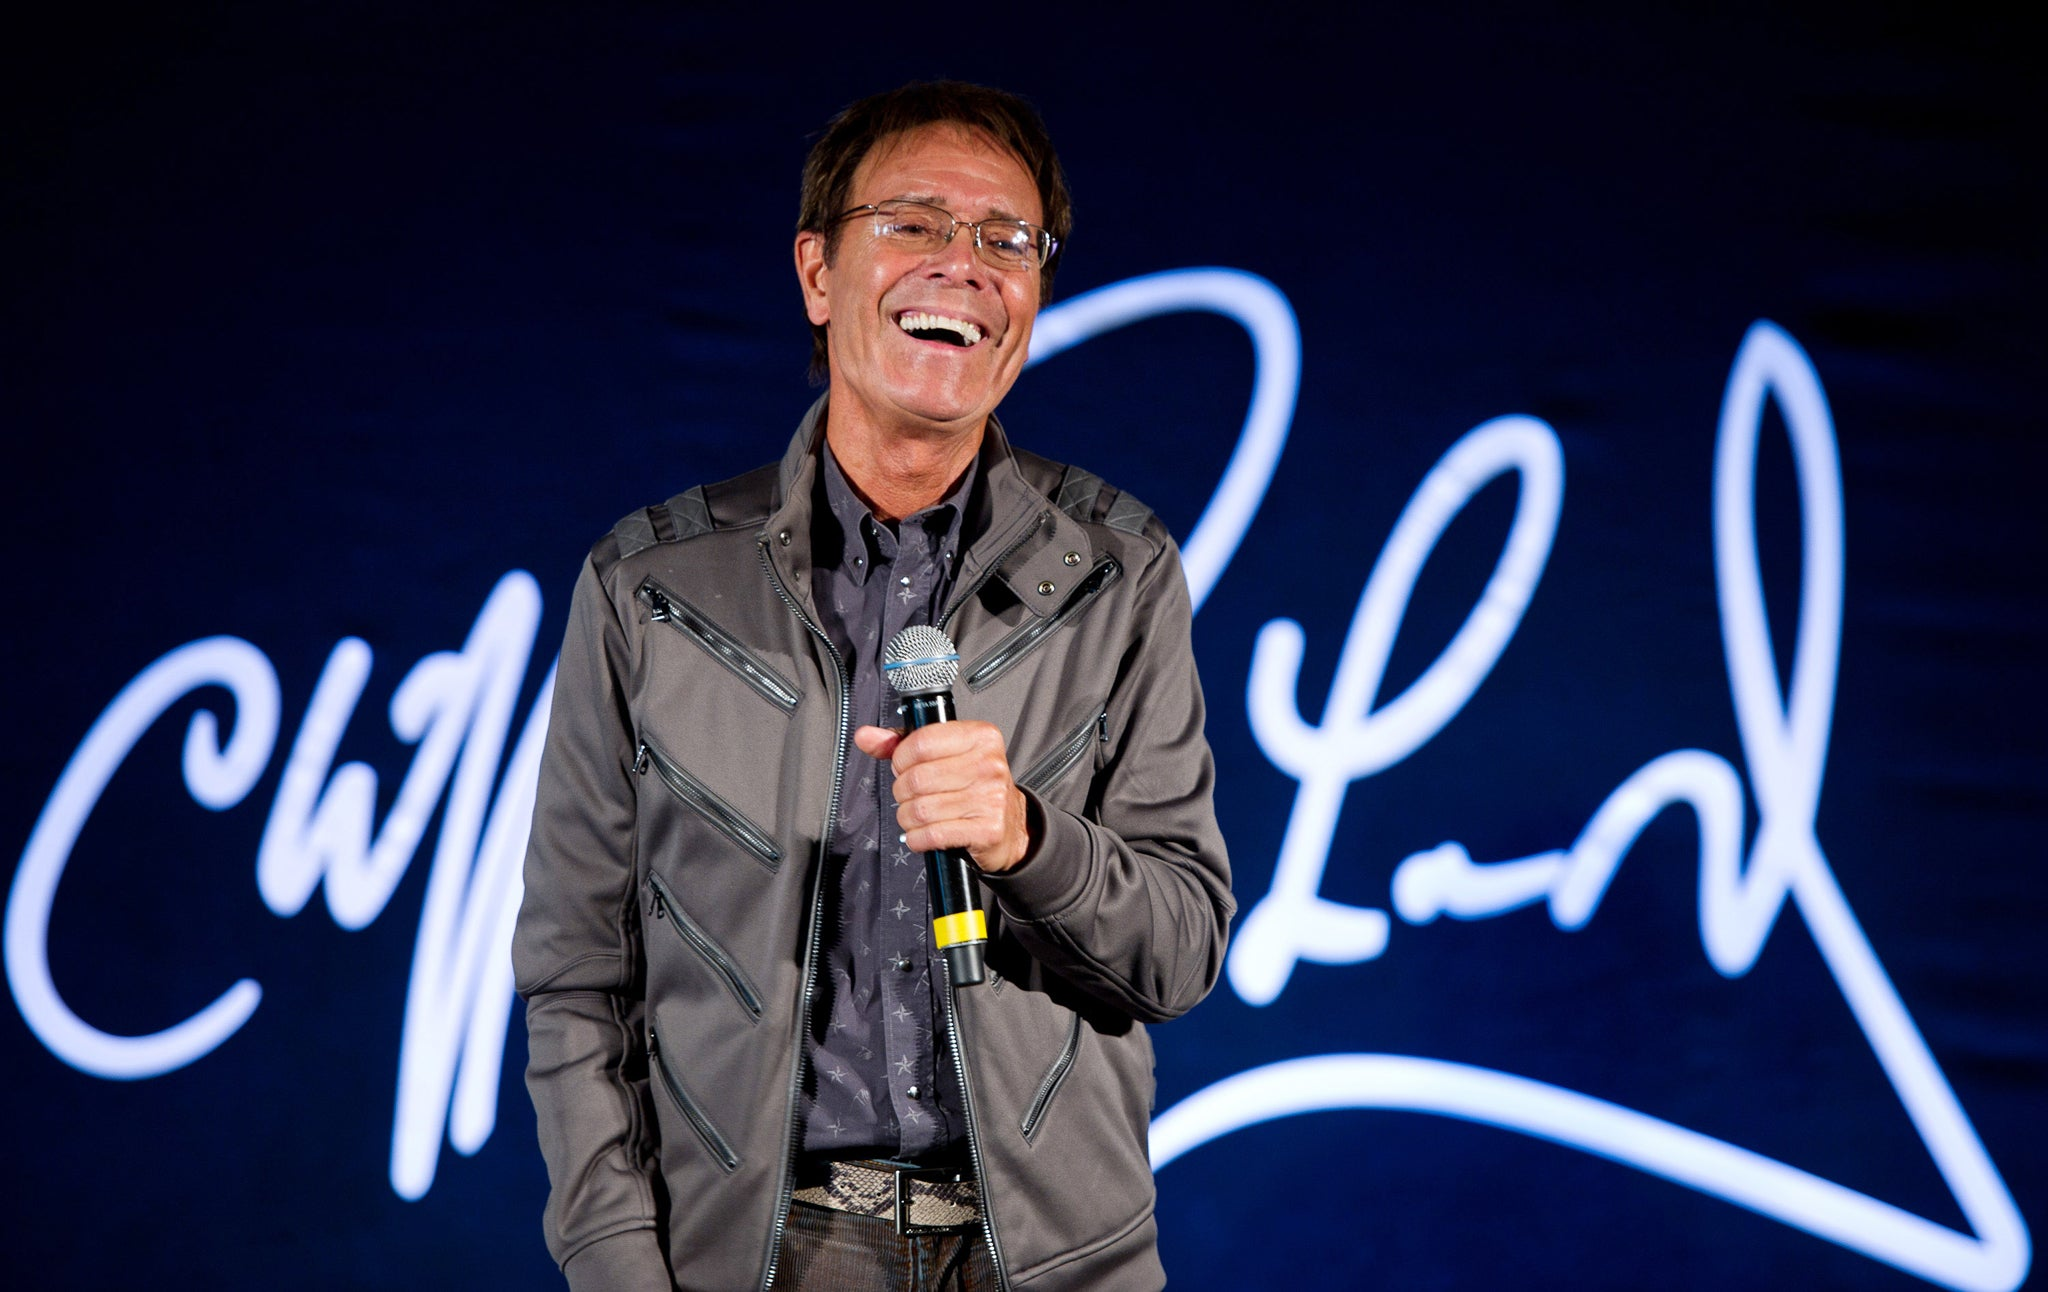 Cliff richard gay or straight